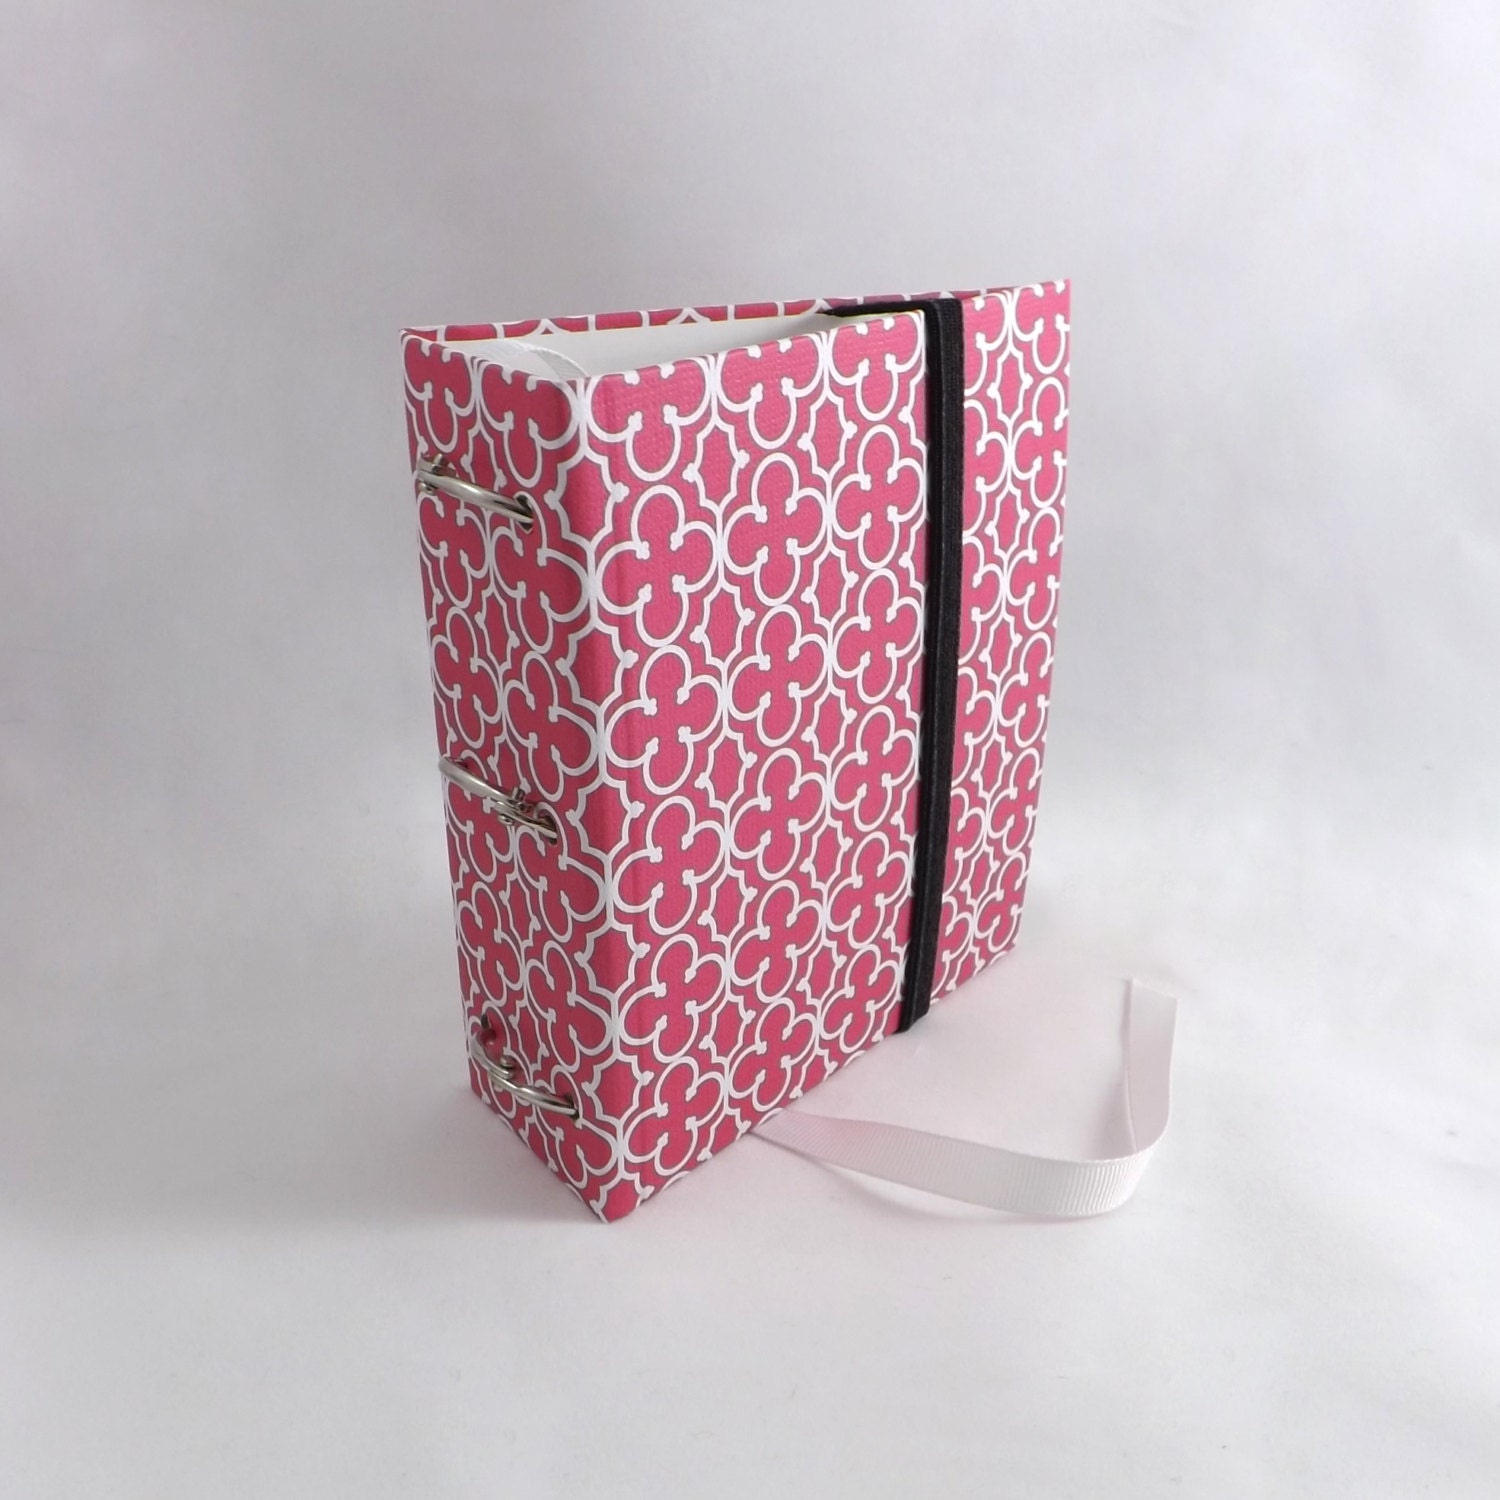 Mini 3 Ring Binder 3 Ring Binder Small Binder Mini By